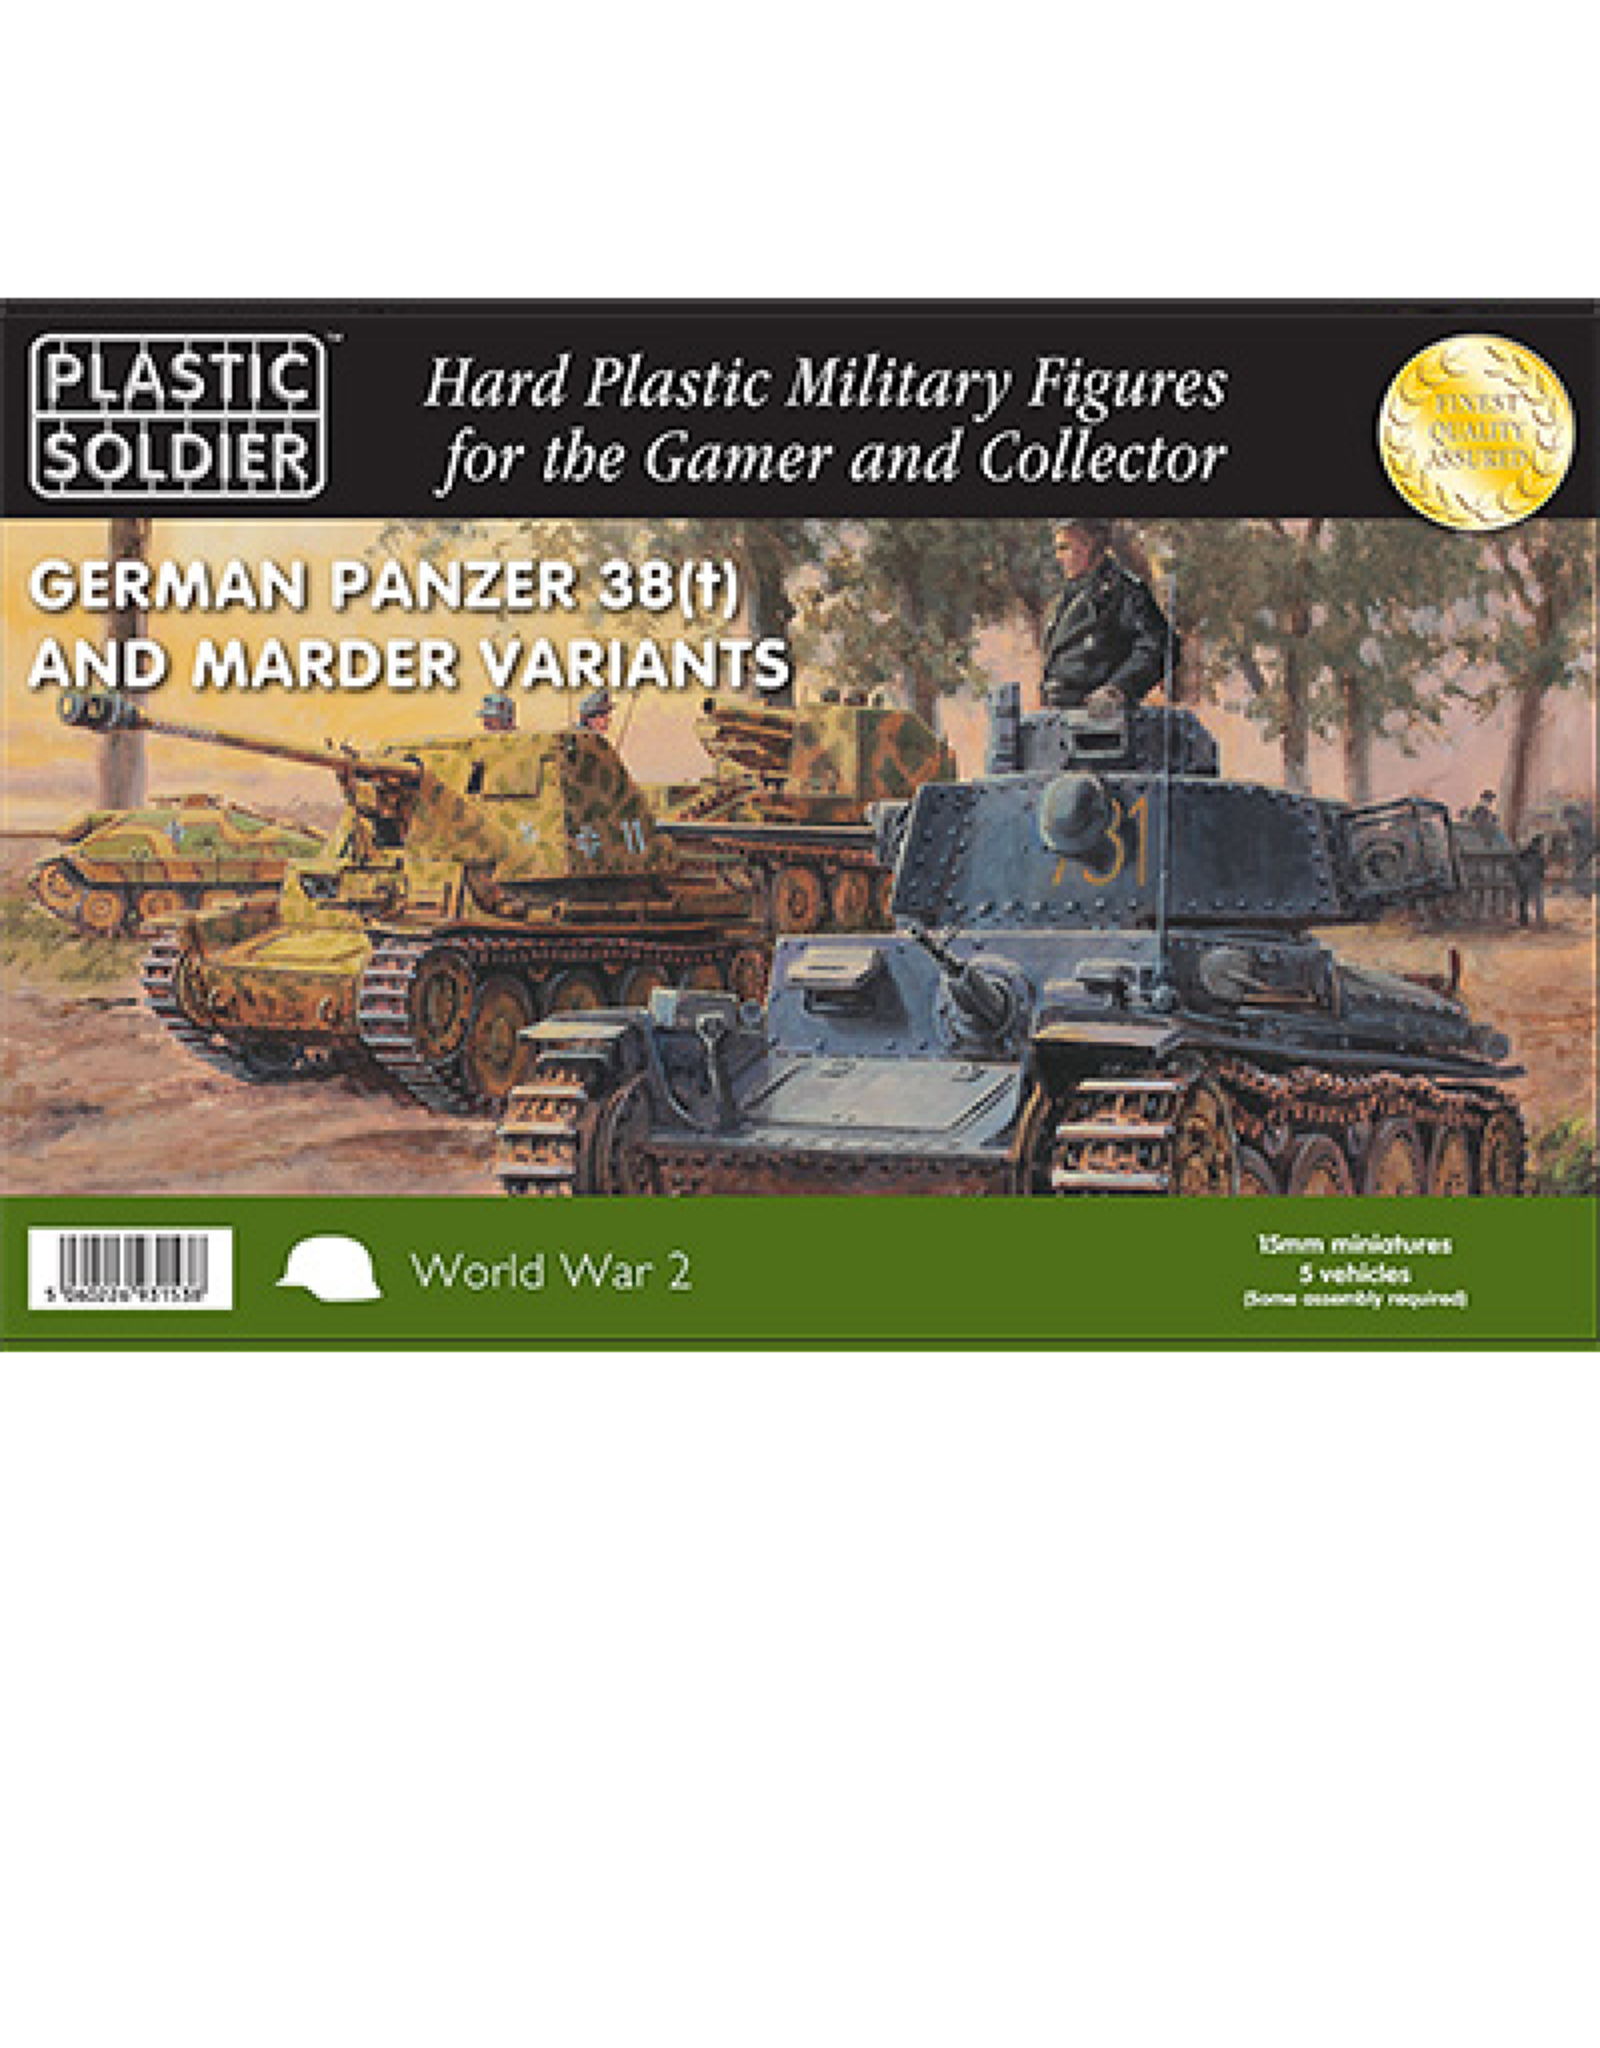 Plastic Soldier Company Panzer 38T with Marder options